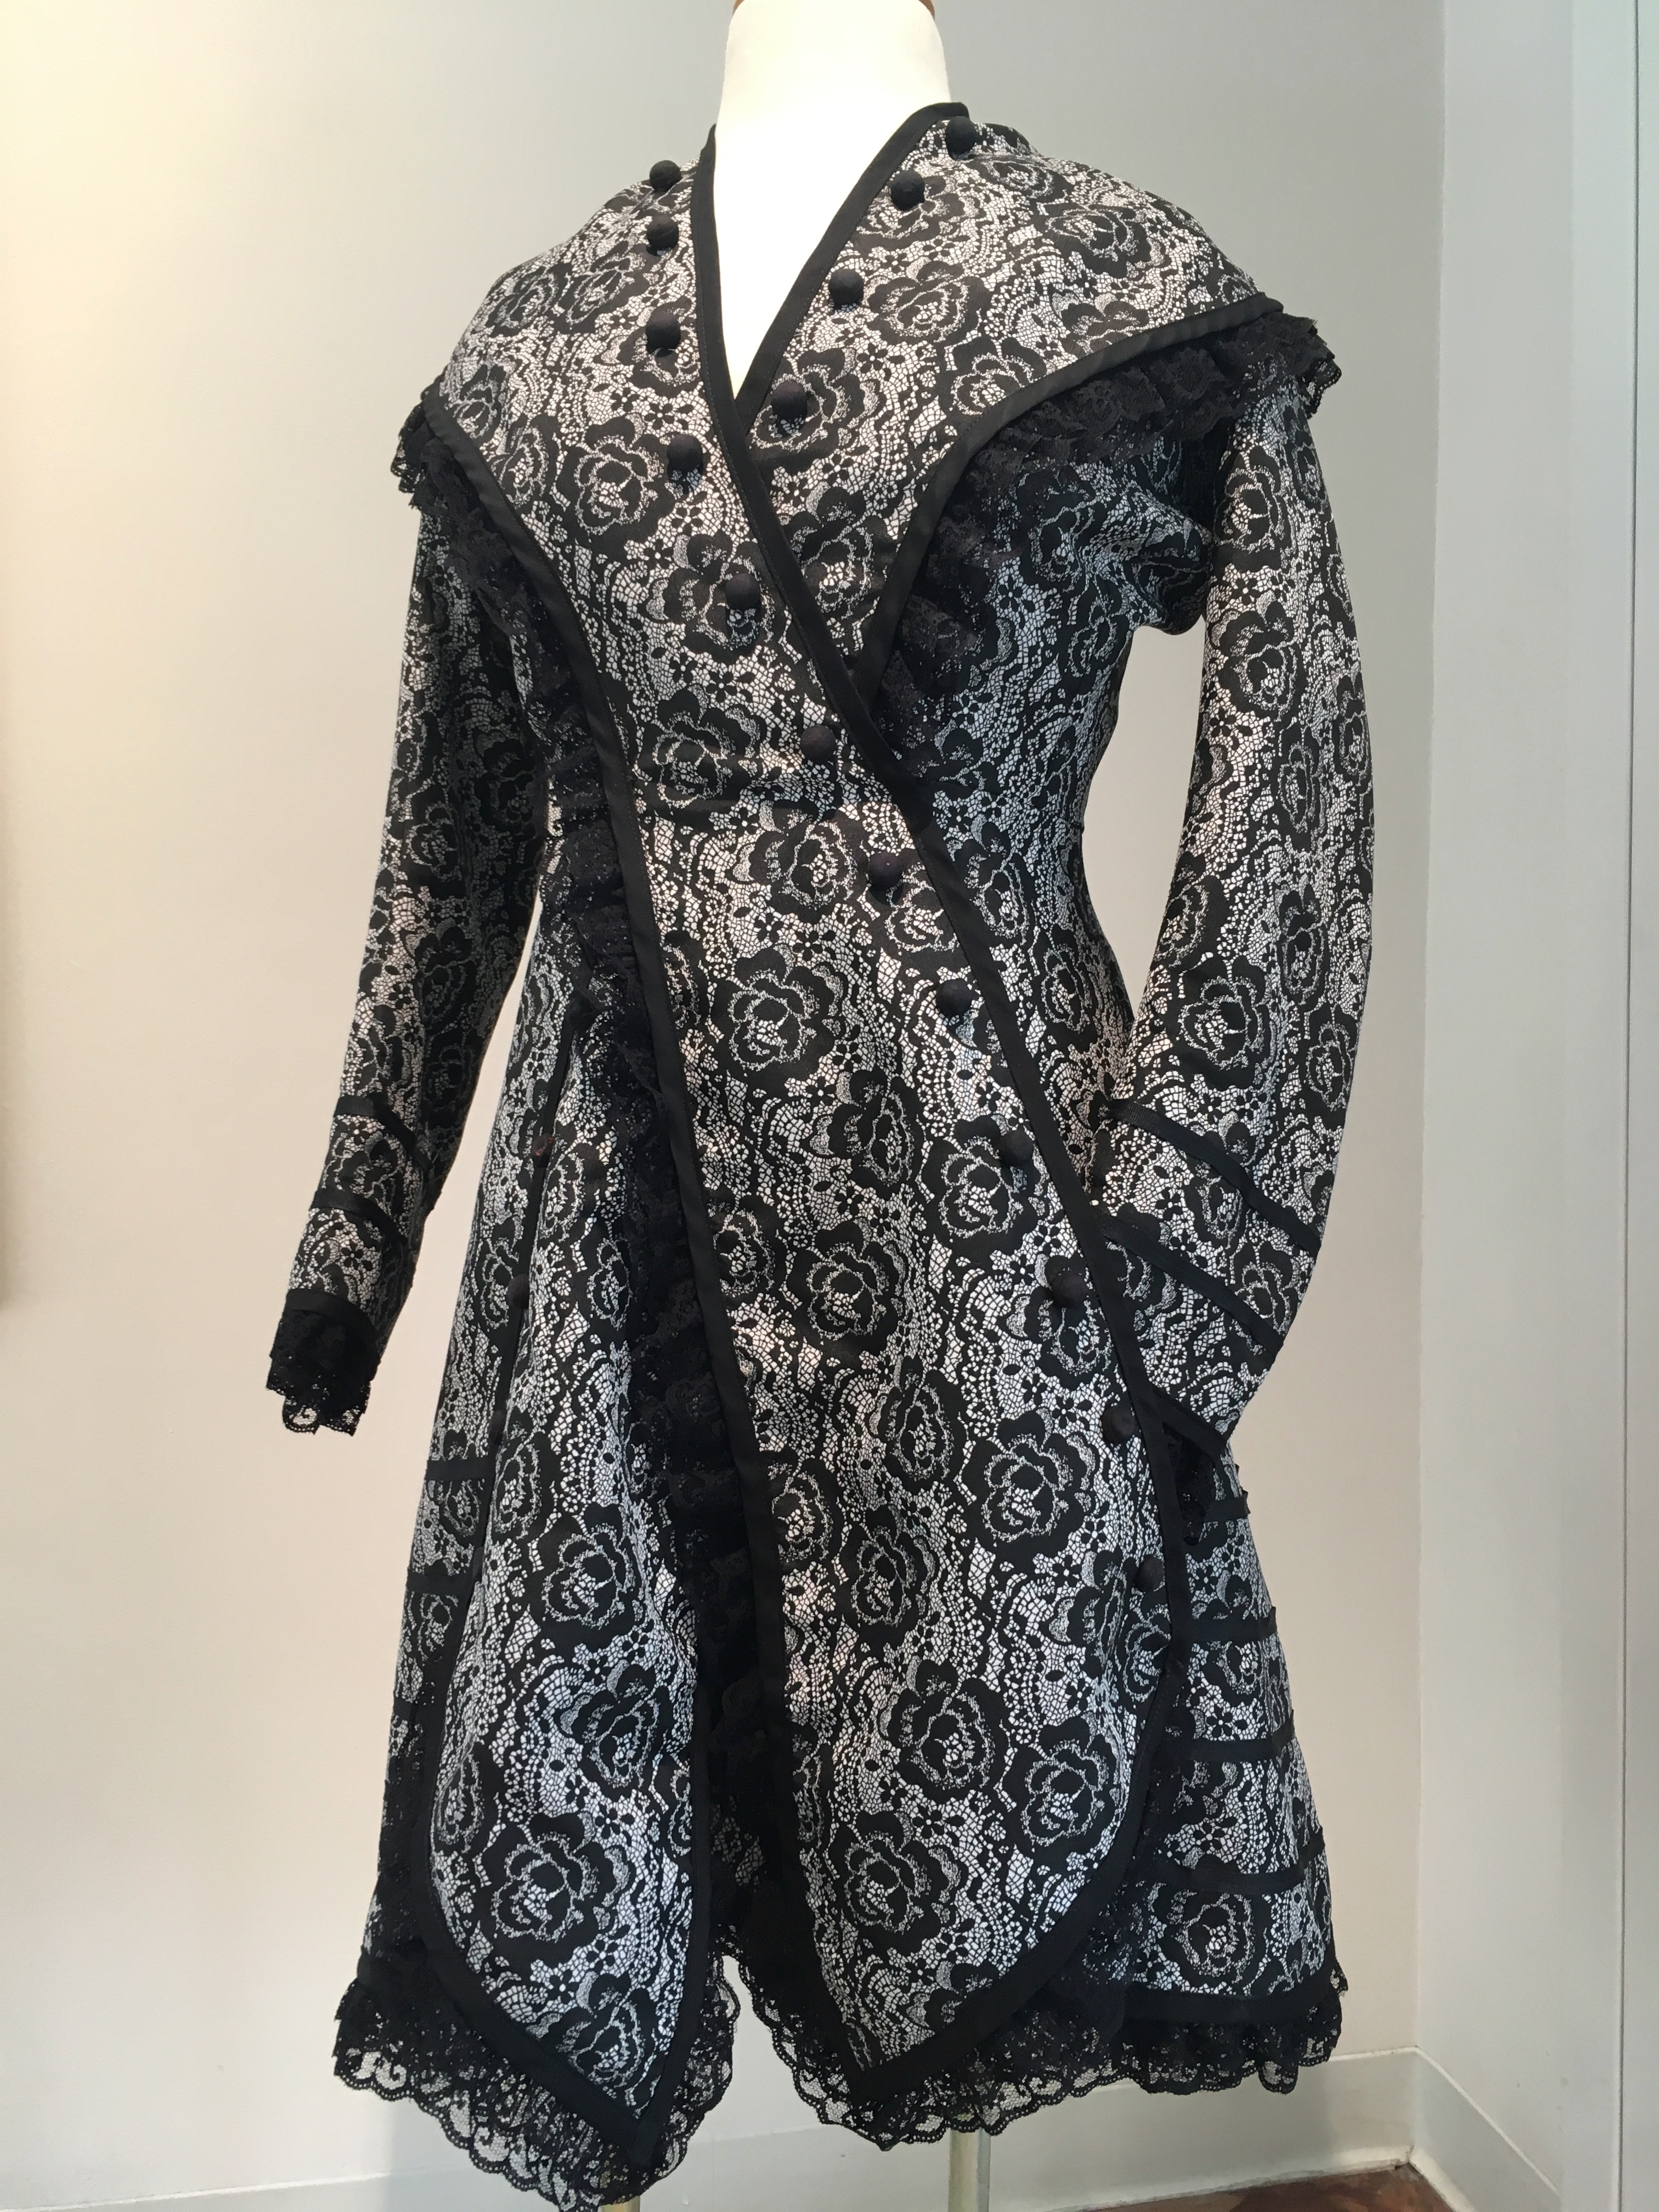 1860's Era Women's Polonaise Paletot, 2018. Handmade from pattern out of an 1868 issue of Harper's Bazar magazine.